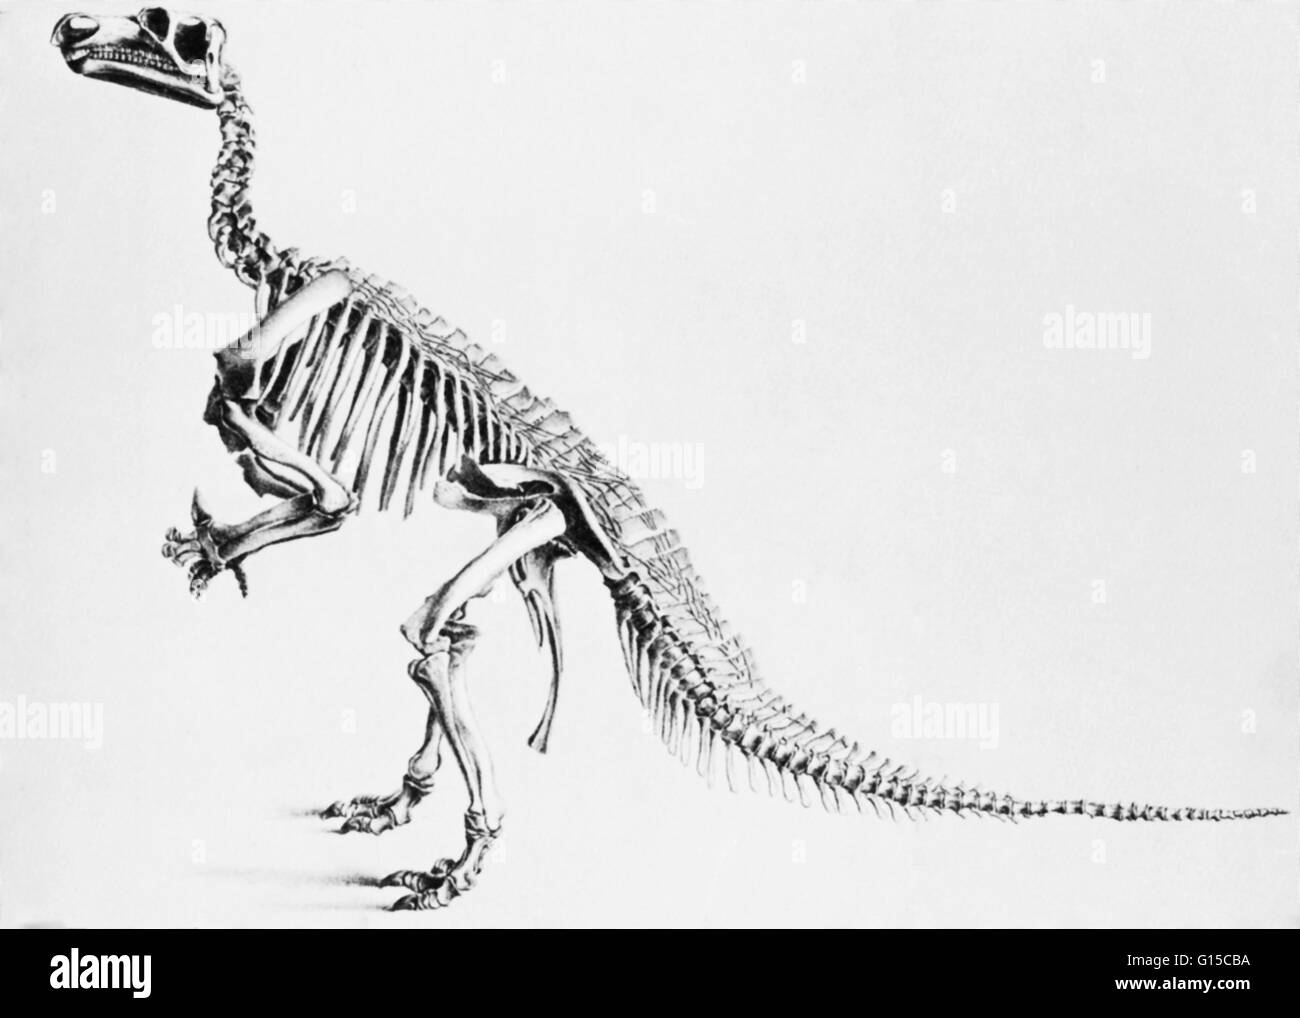 The word dinosaur was coined by Richard Owen in 1841, deinos (terrible) + sauros (lizard) which describe various - Stock Image